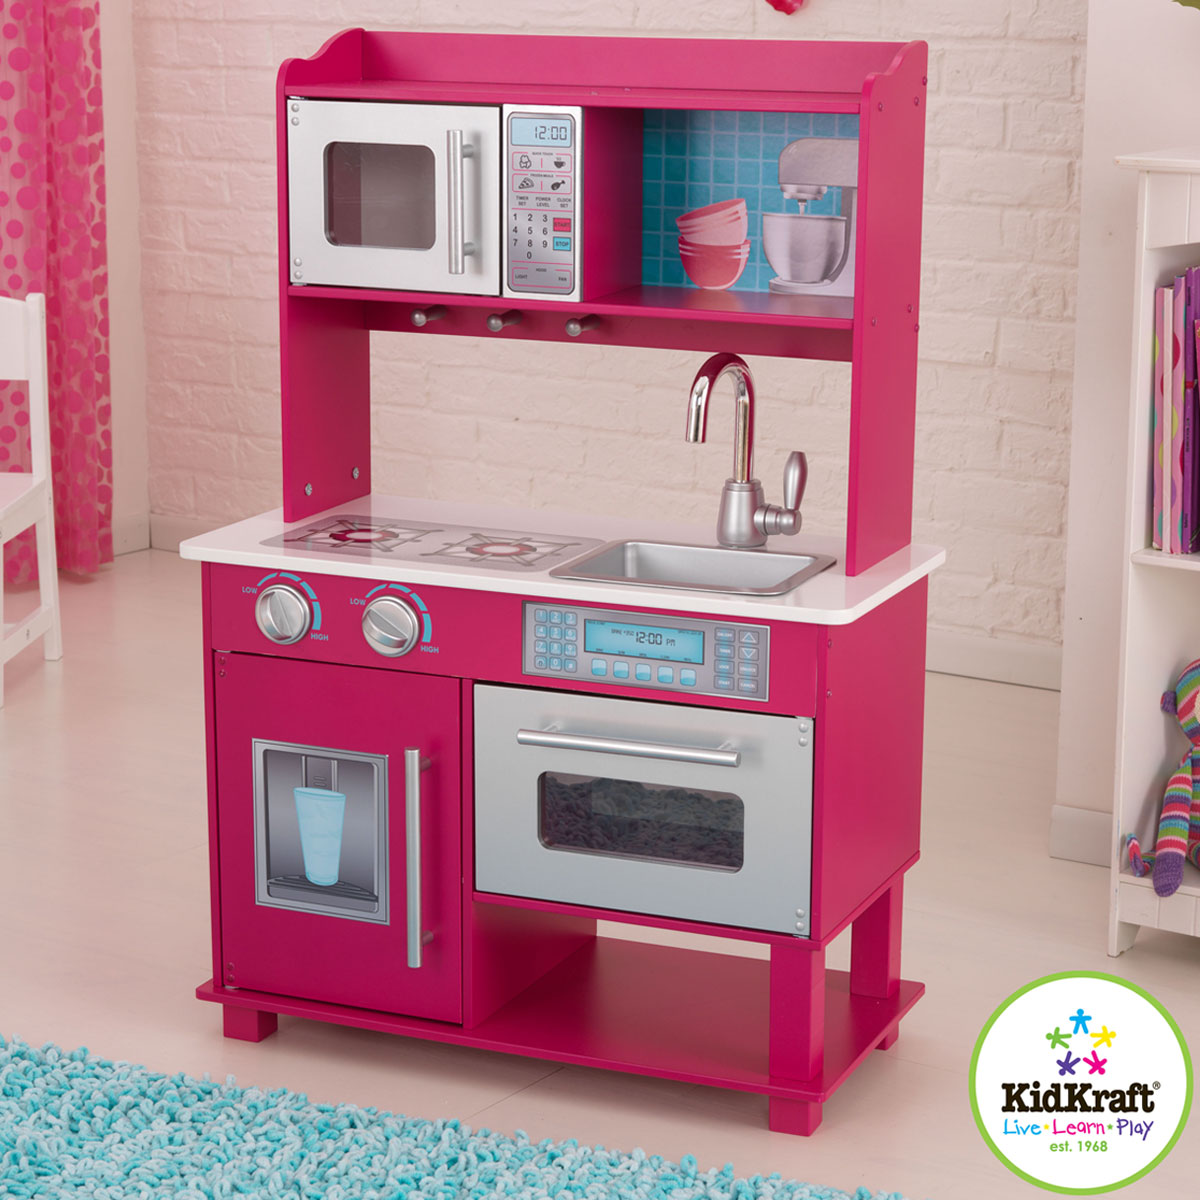 Kidkraft Gracie Toddler Kitchen 53277